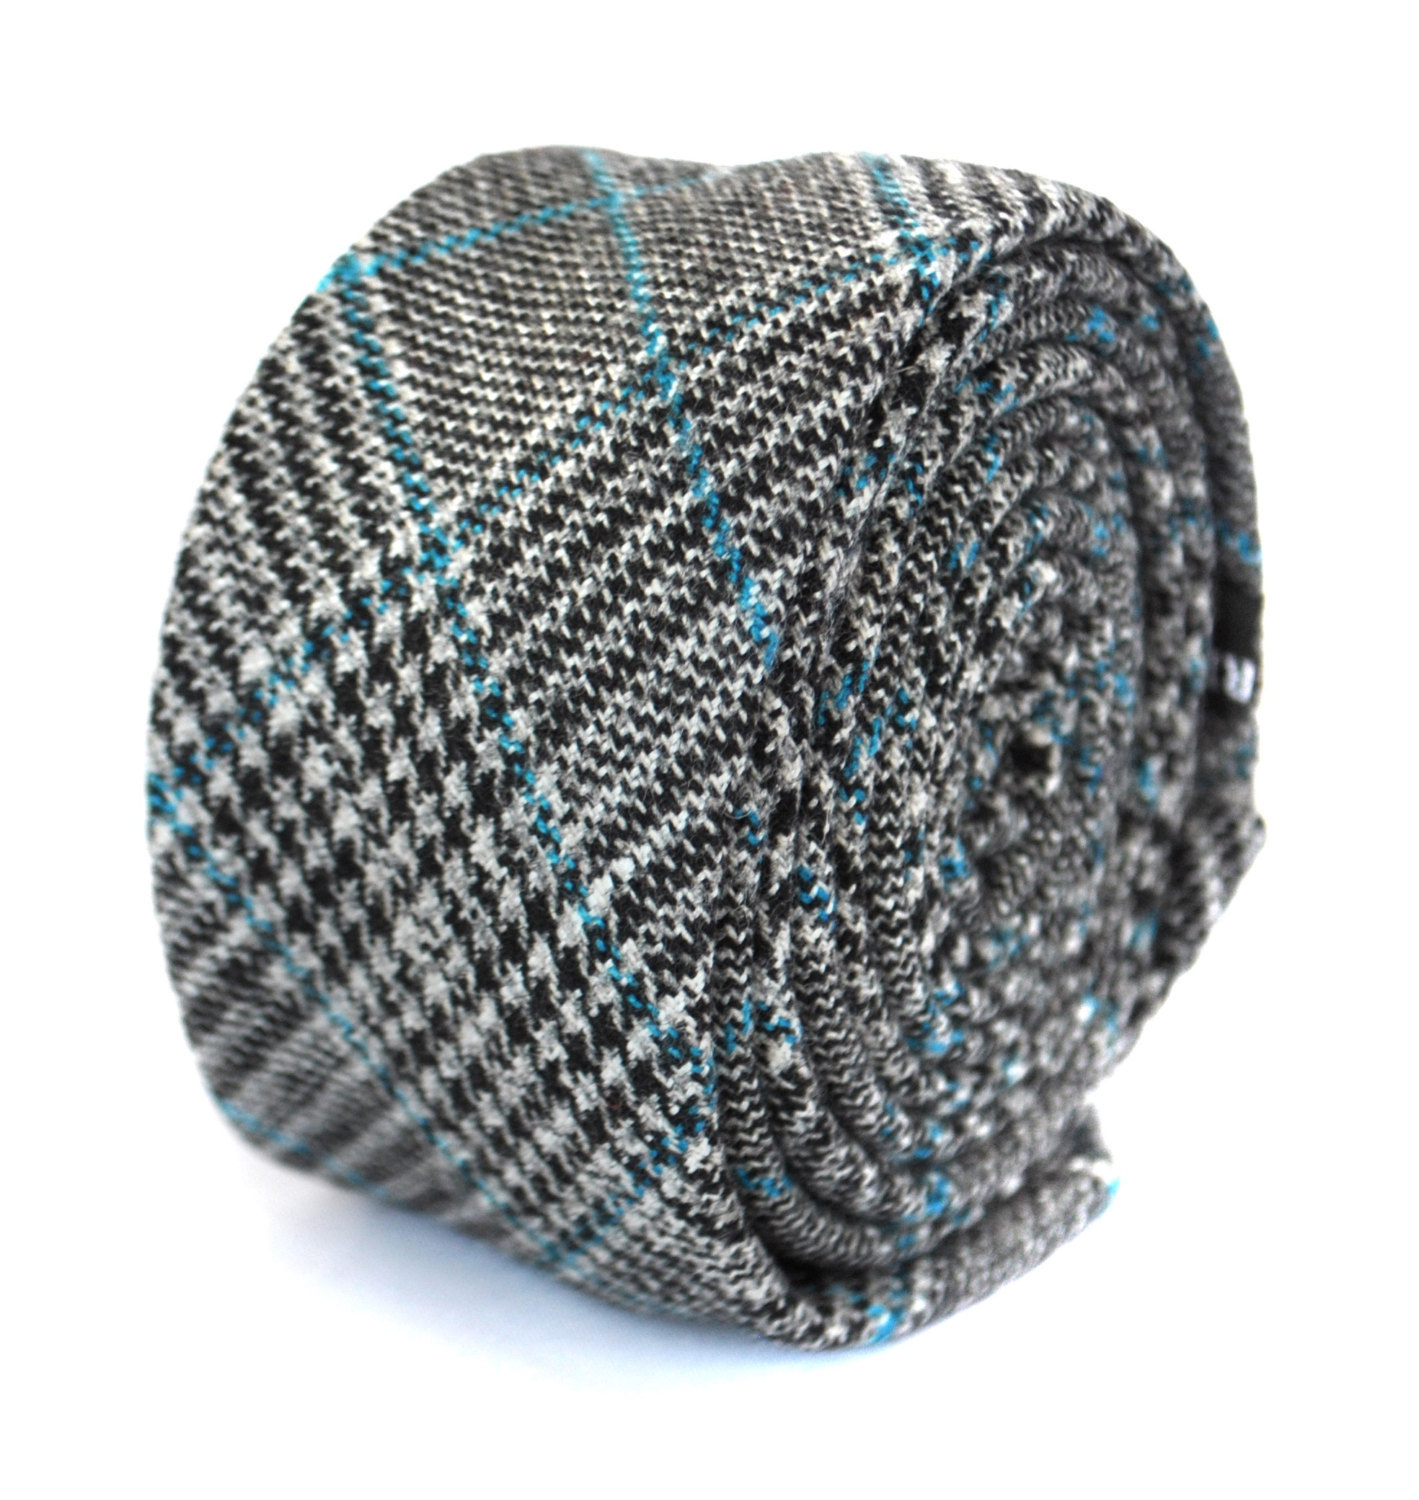 skinny grey & light blue tweed wool tie by Frederick Thomas FT1952